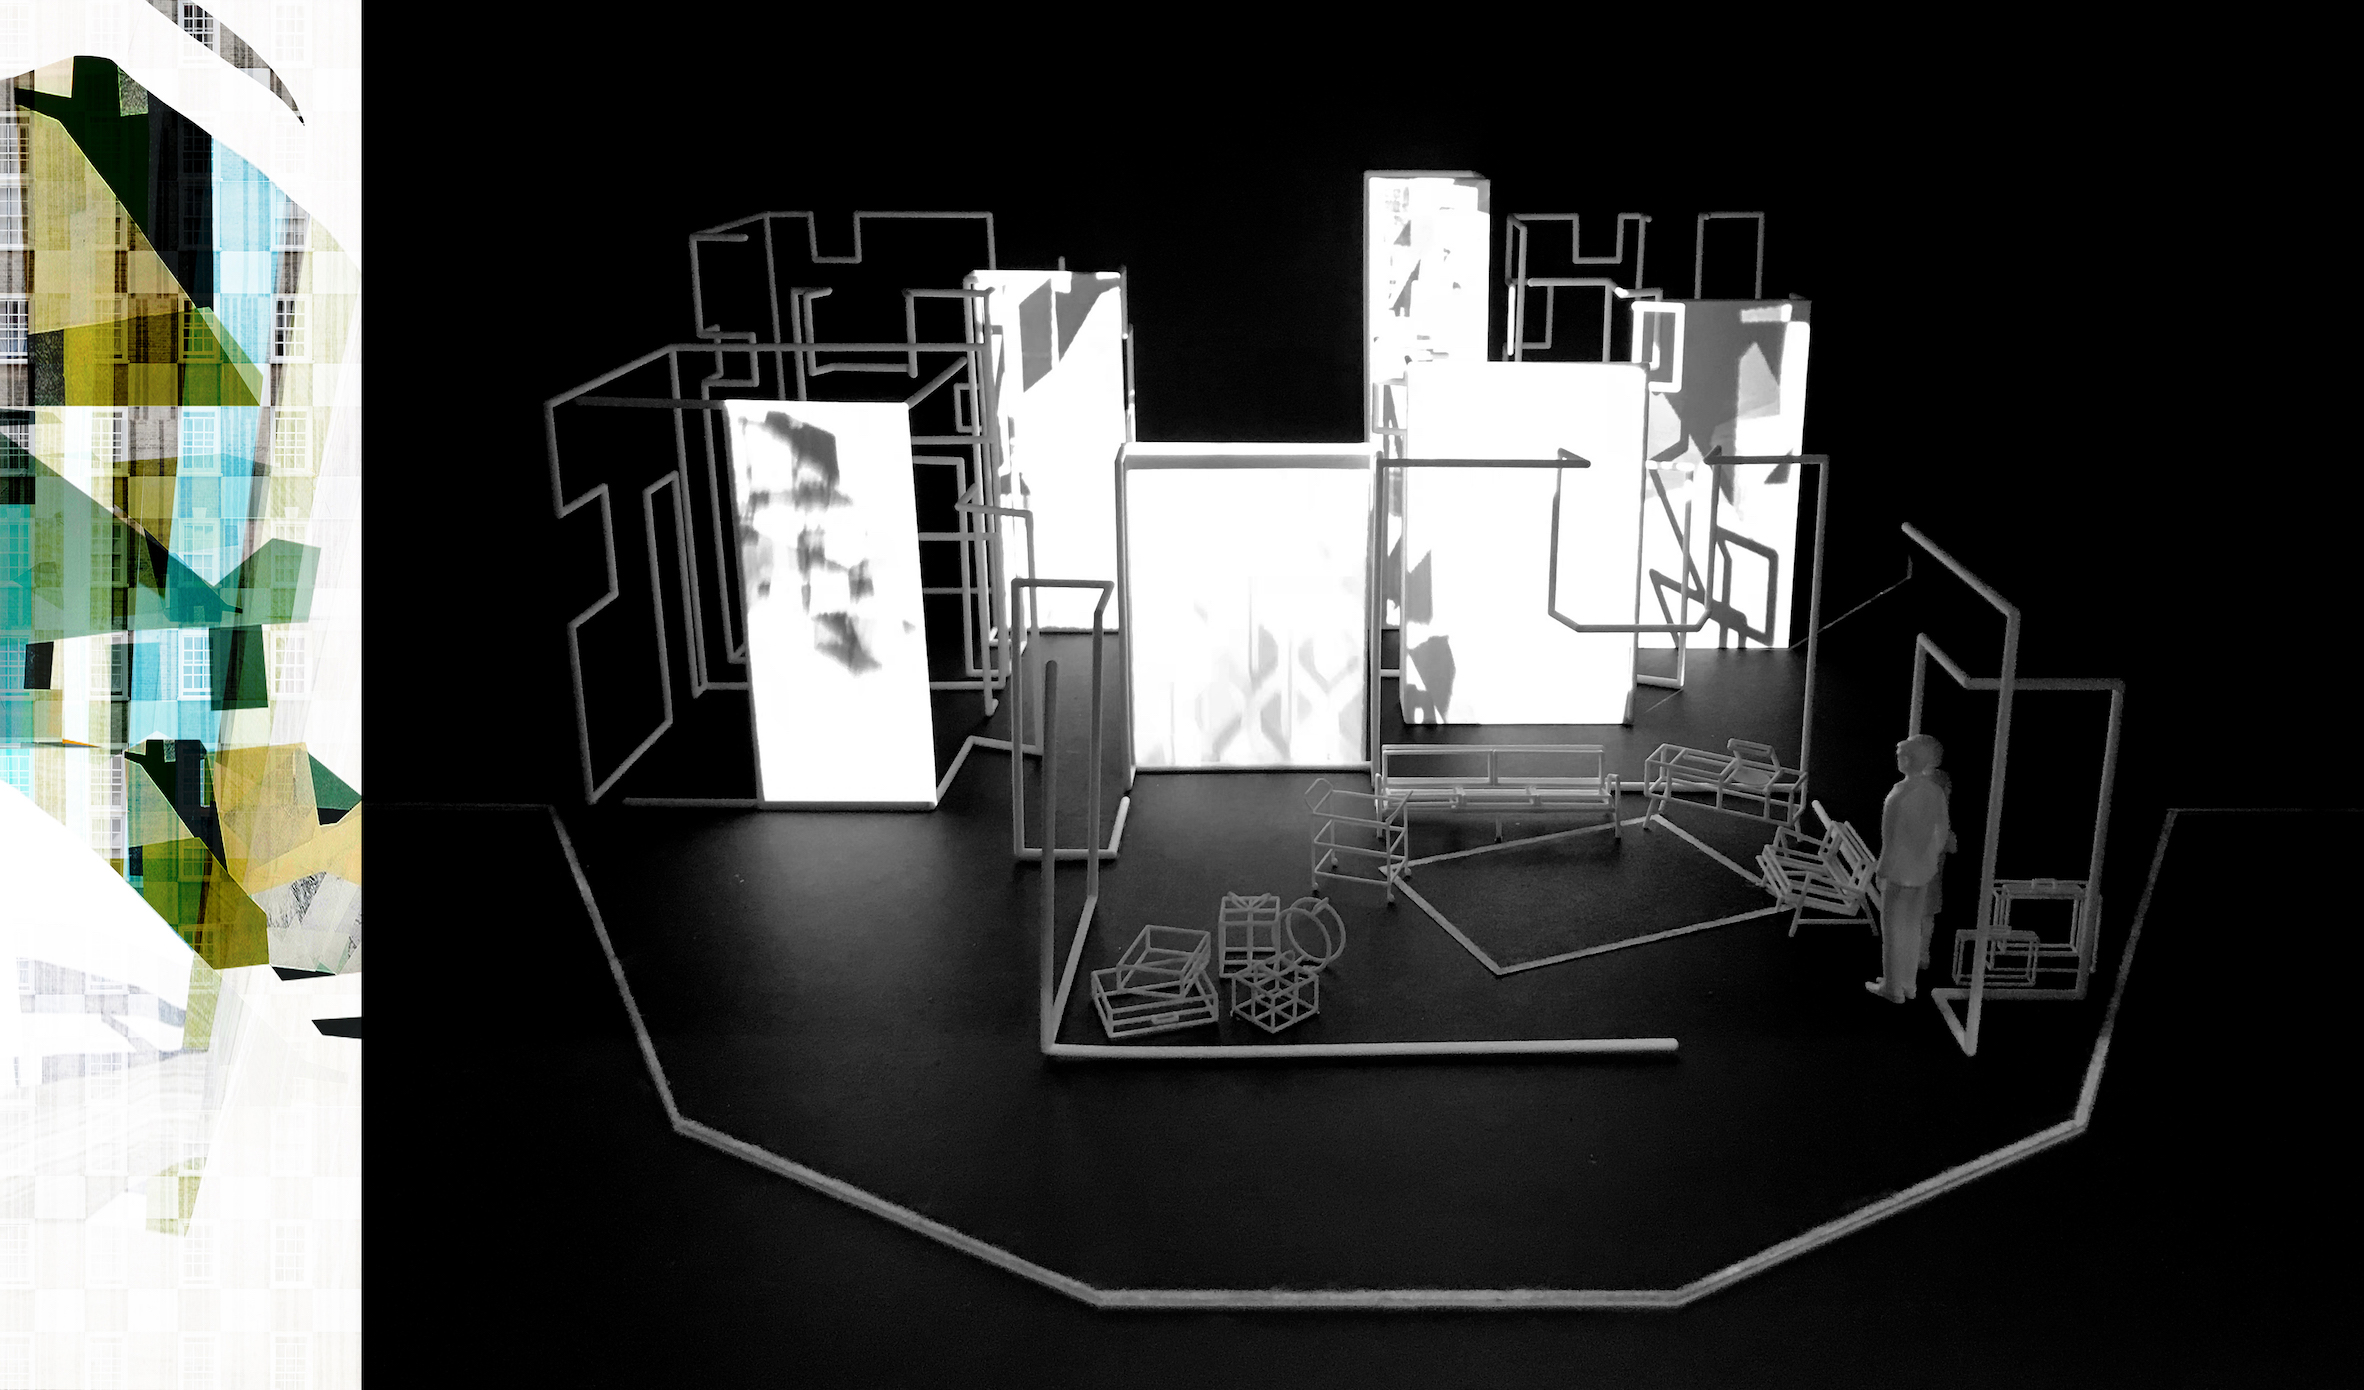 Collage and projection mapping onto 3D printed model box 1:25